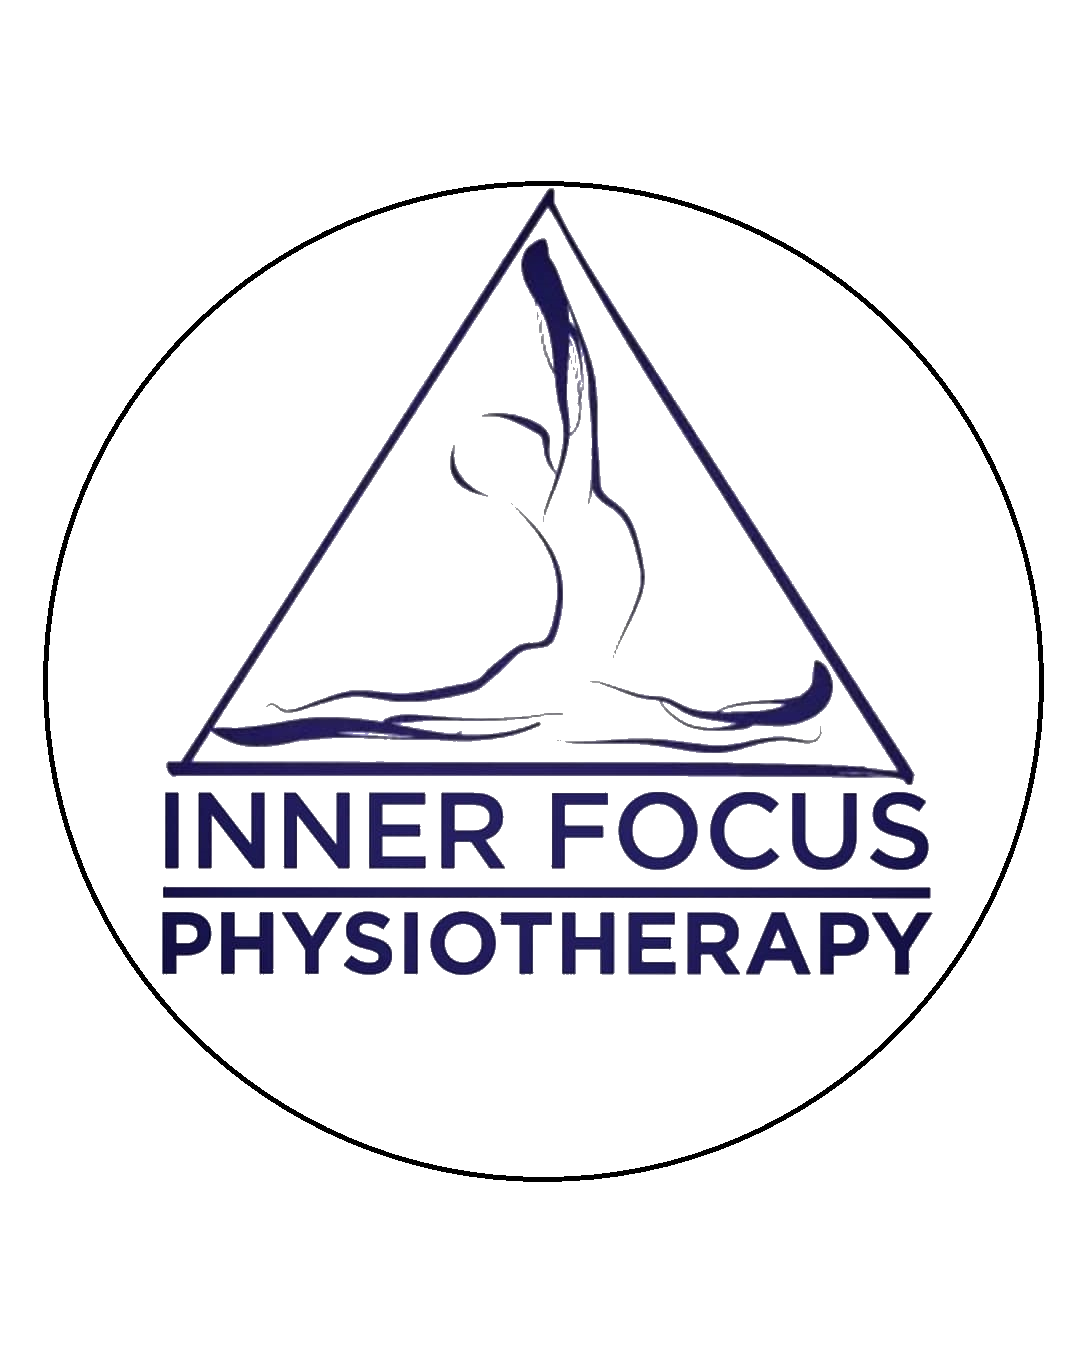 Inner Focus Physiotherapy